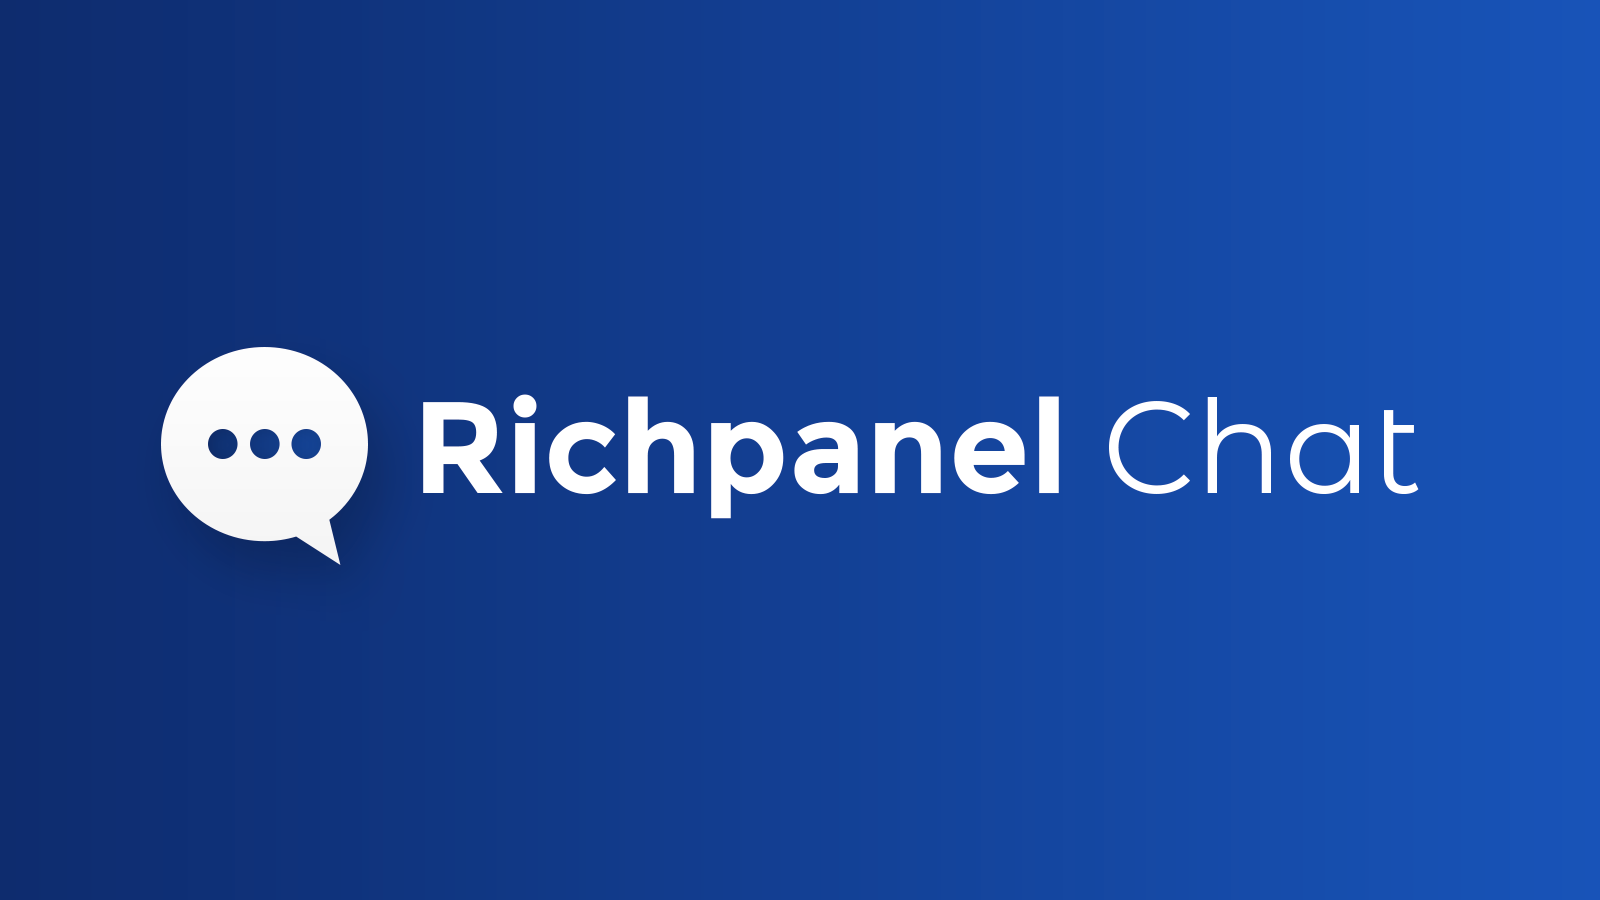 Richpanel Live Chat & Helpdesk